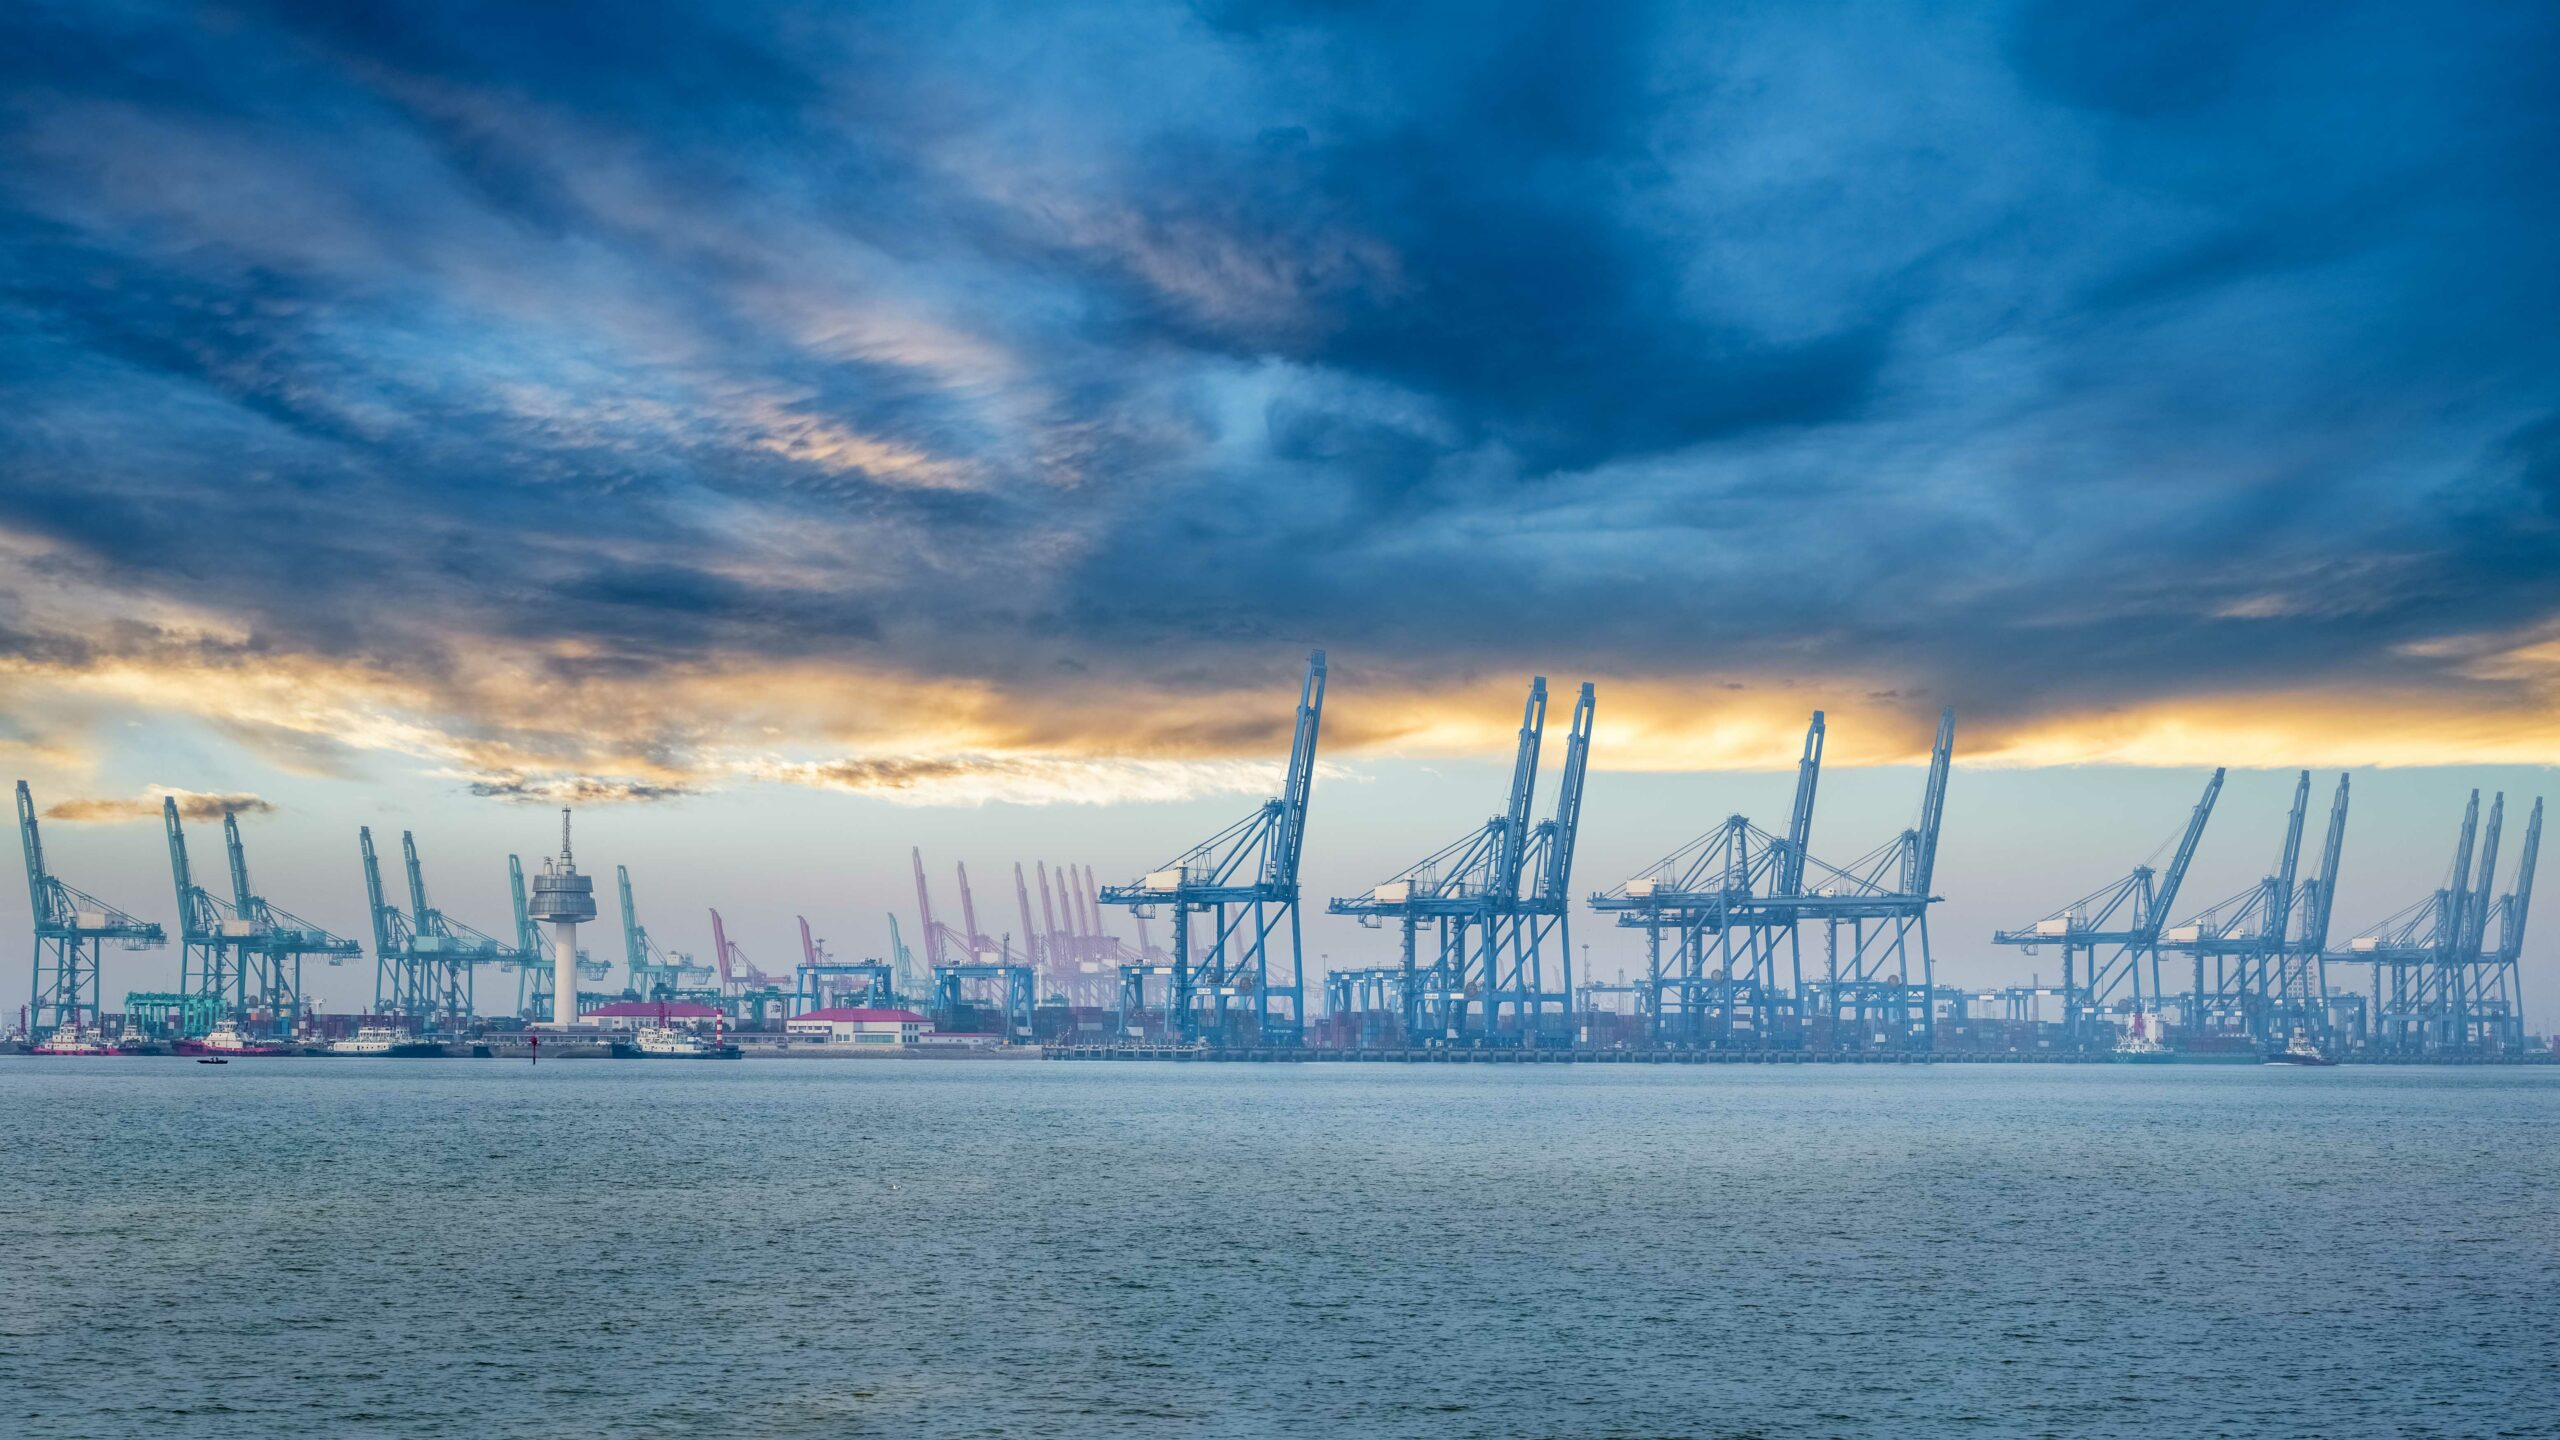 Transpacific alliances reinstalling capacity for booming trade 1